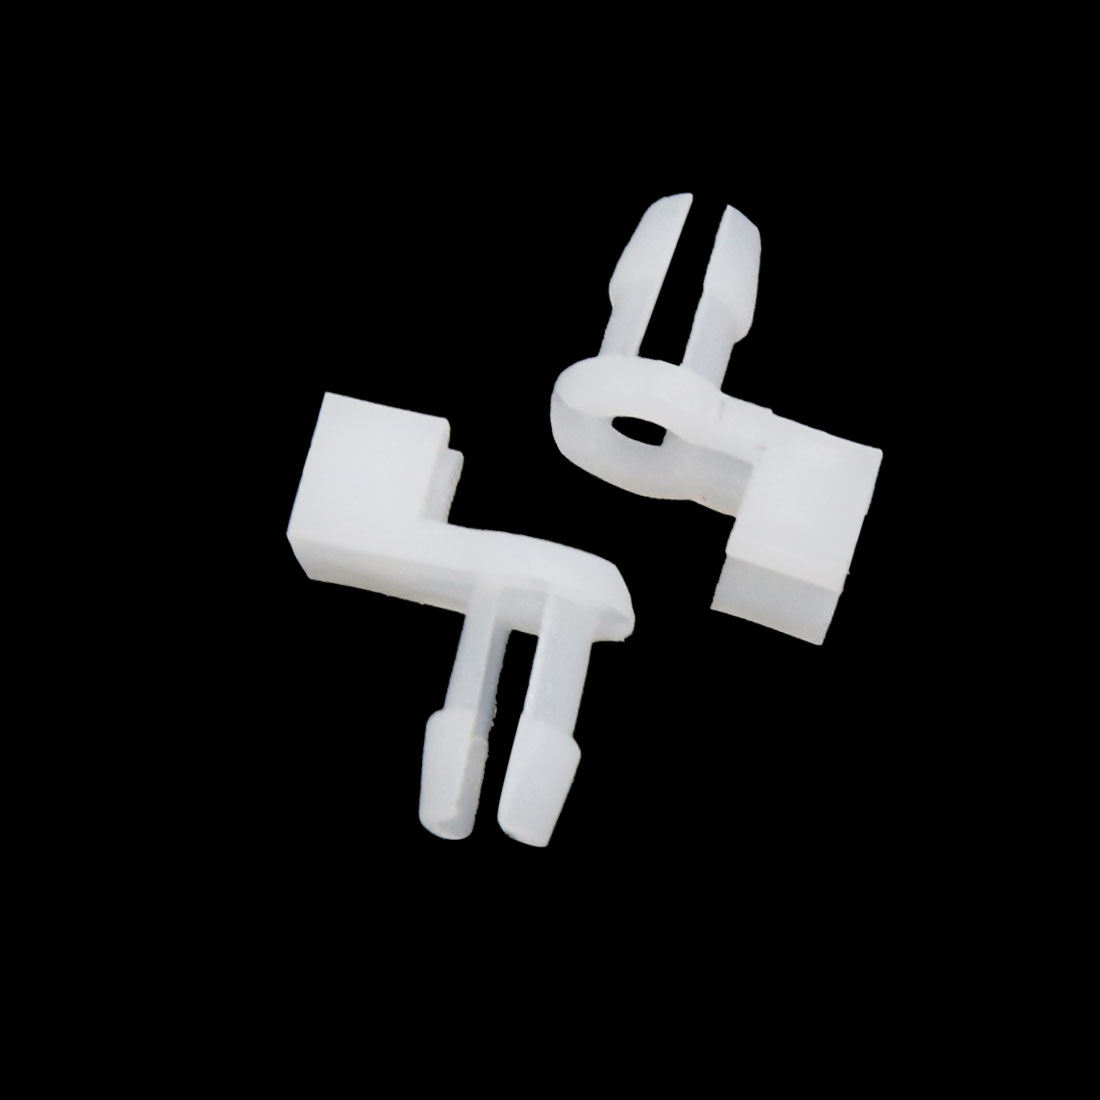 50Pcs Plastic Rivets Fastener Clips Engine Lining Retainer White 5mm for Car - image 2 de 3